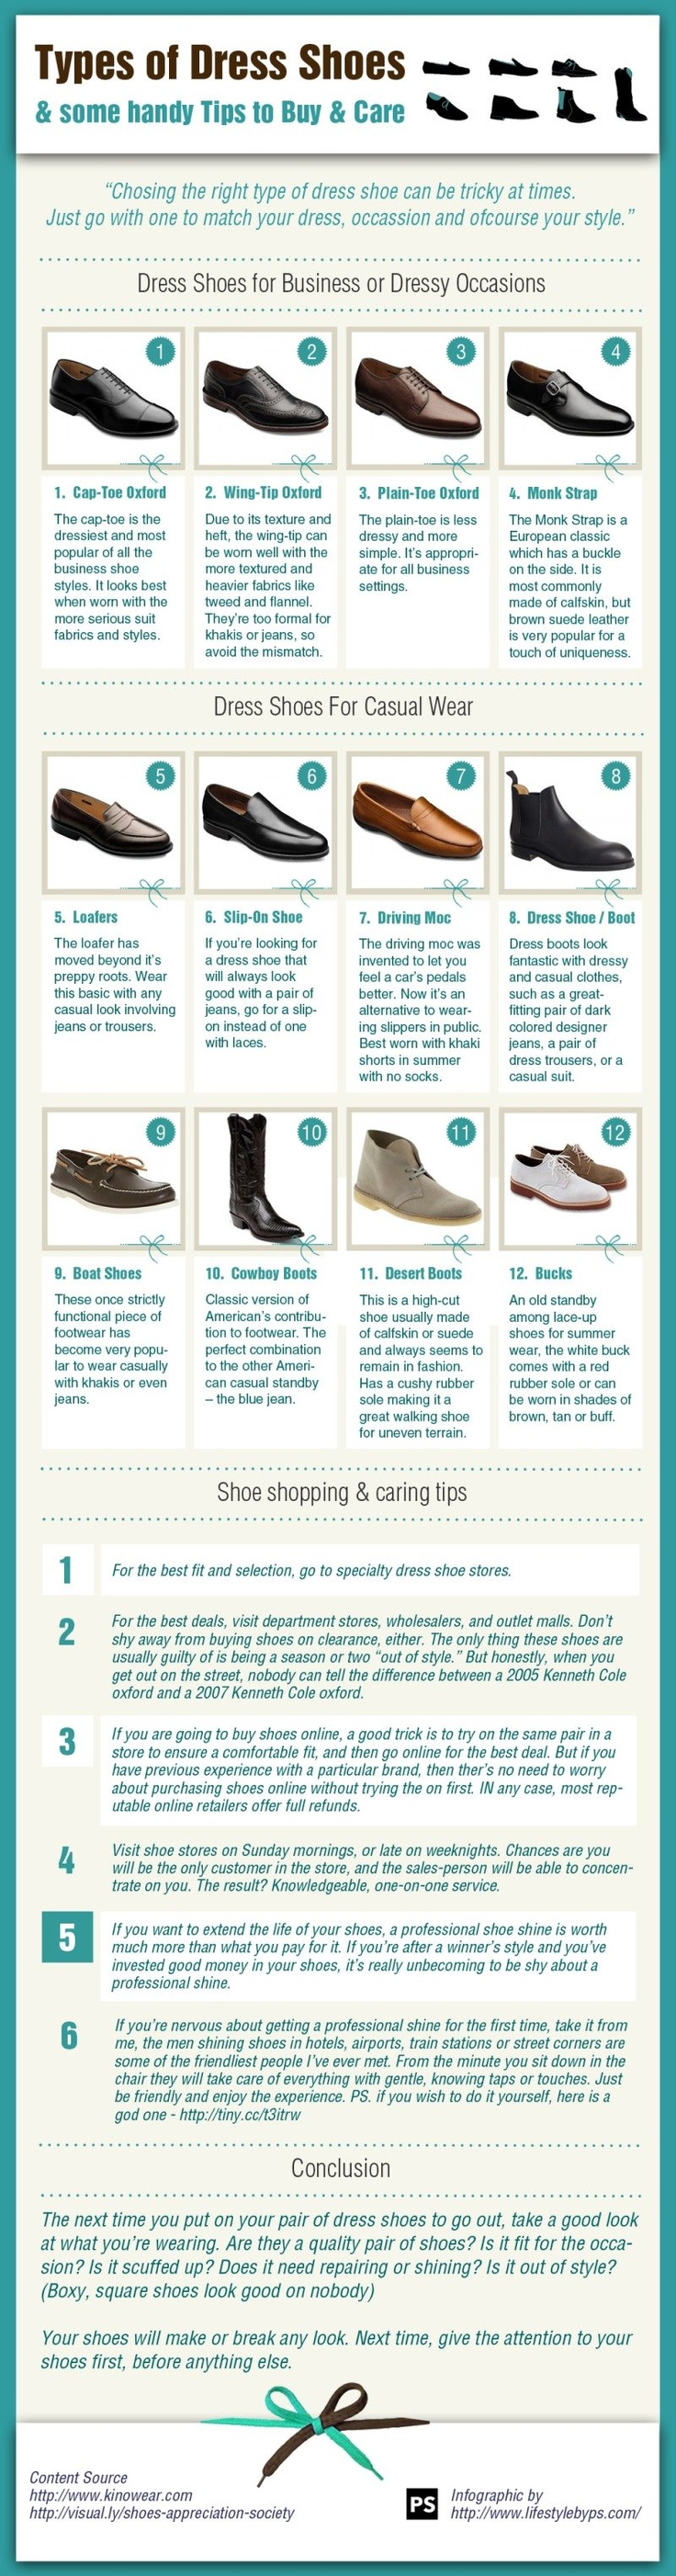 Dress your man - Types Of Dress Shoes And Some Handy Tips To Buy And Care.